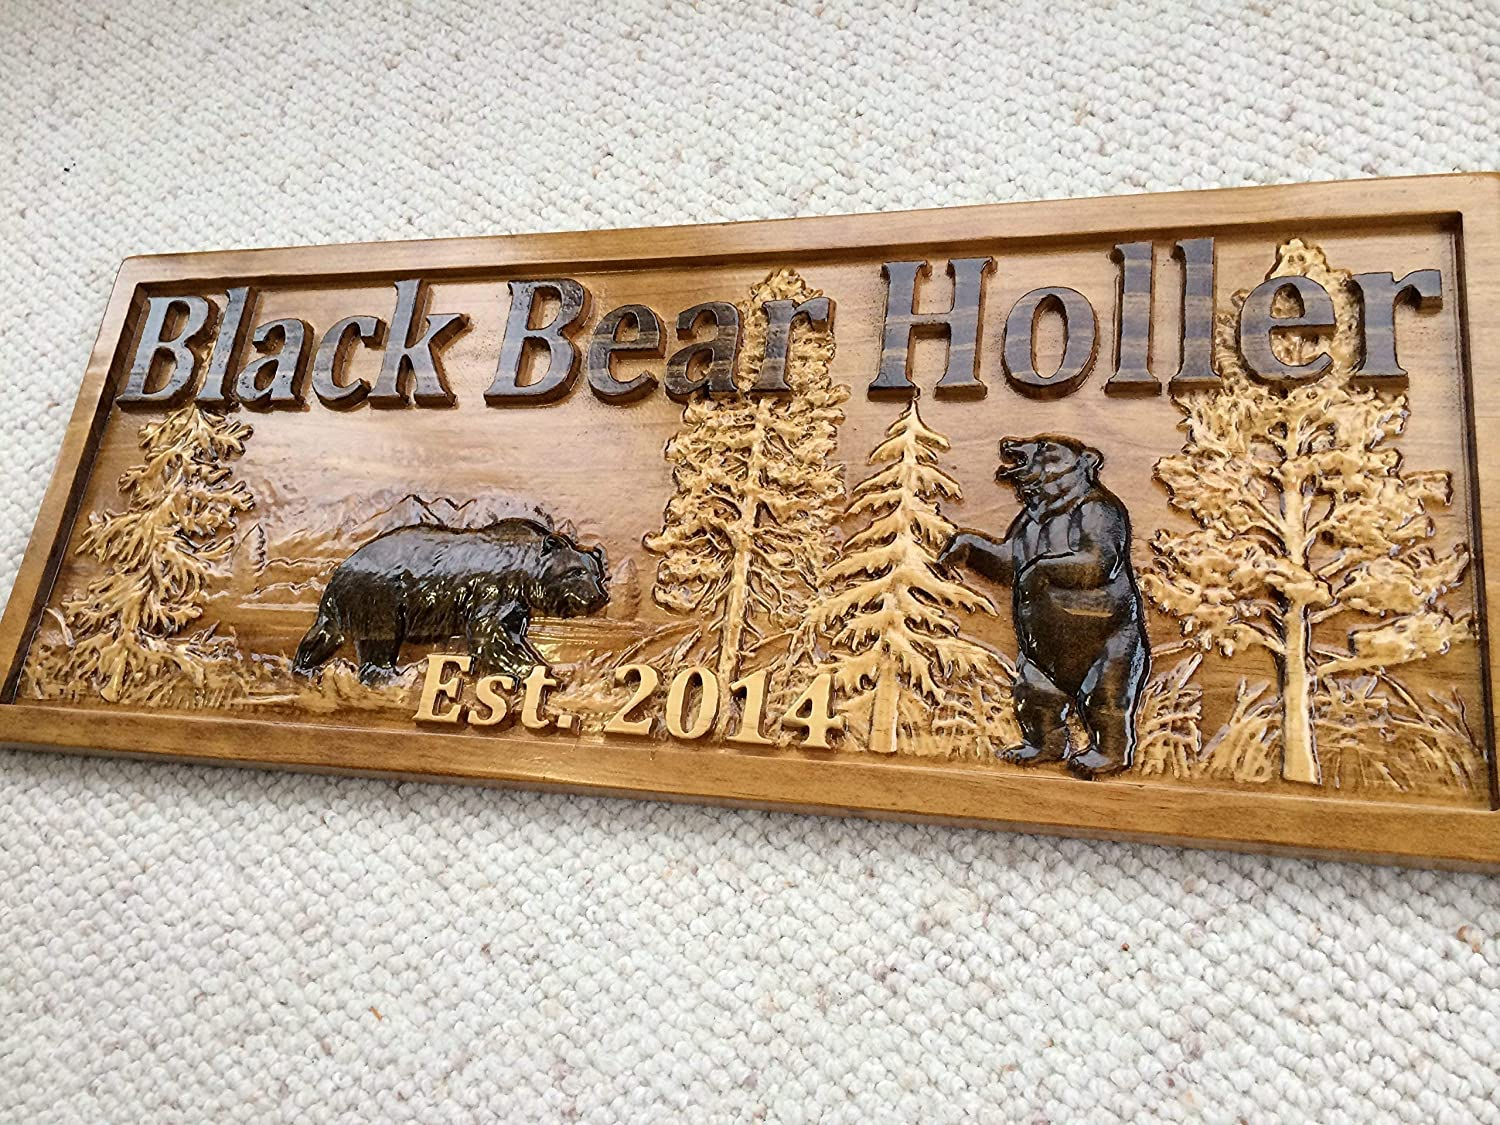 Personalized Wood Sign Custom Carved Cabin Gift Man Cave Wedding Family Last Name Camp Lake House D/écor Woods Black Bear Plaque Last Name Established Sign Custom Wood Sign 3D Camper Sign